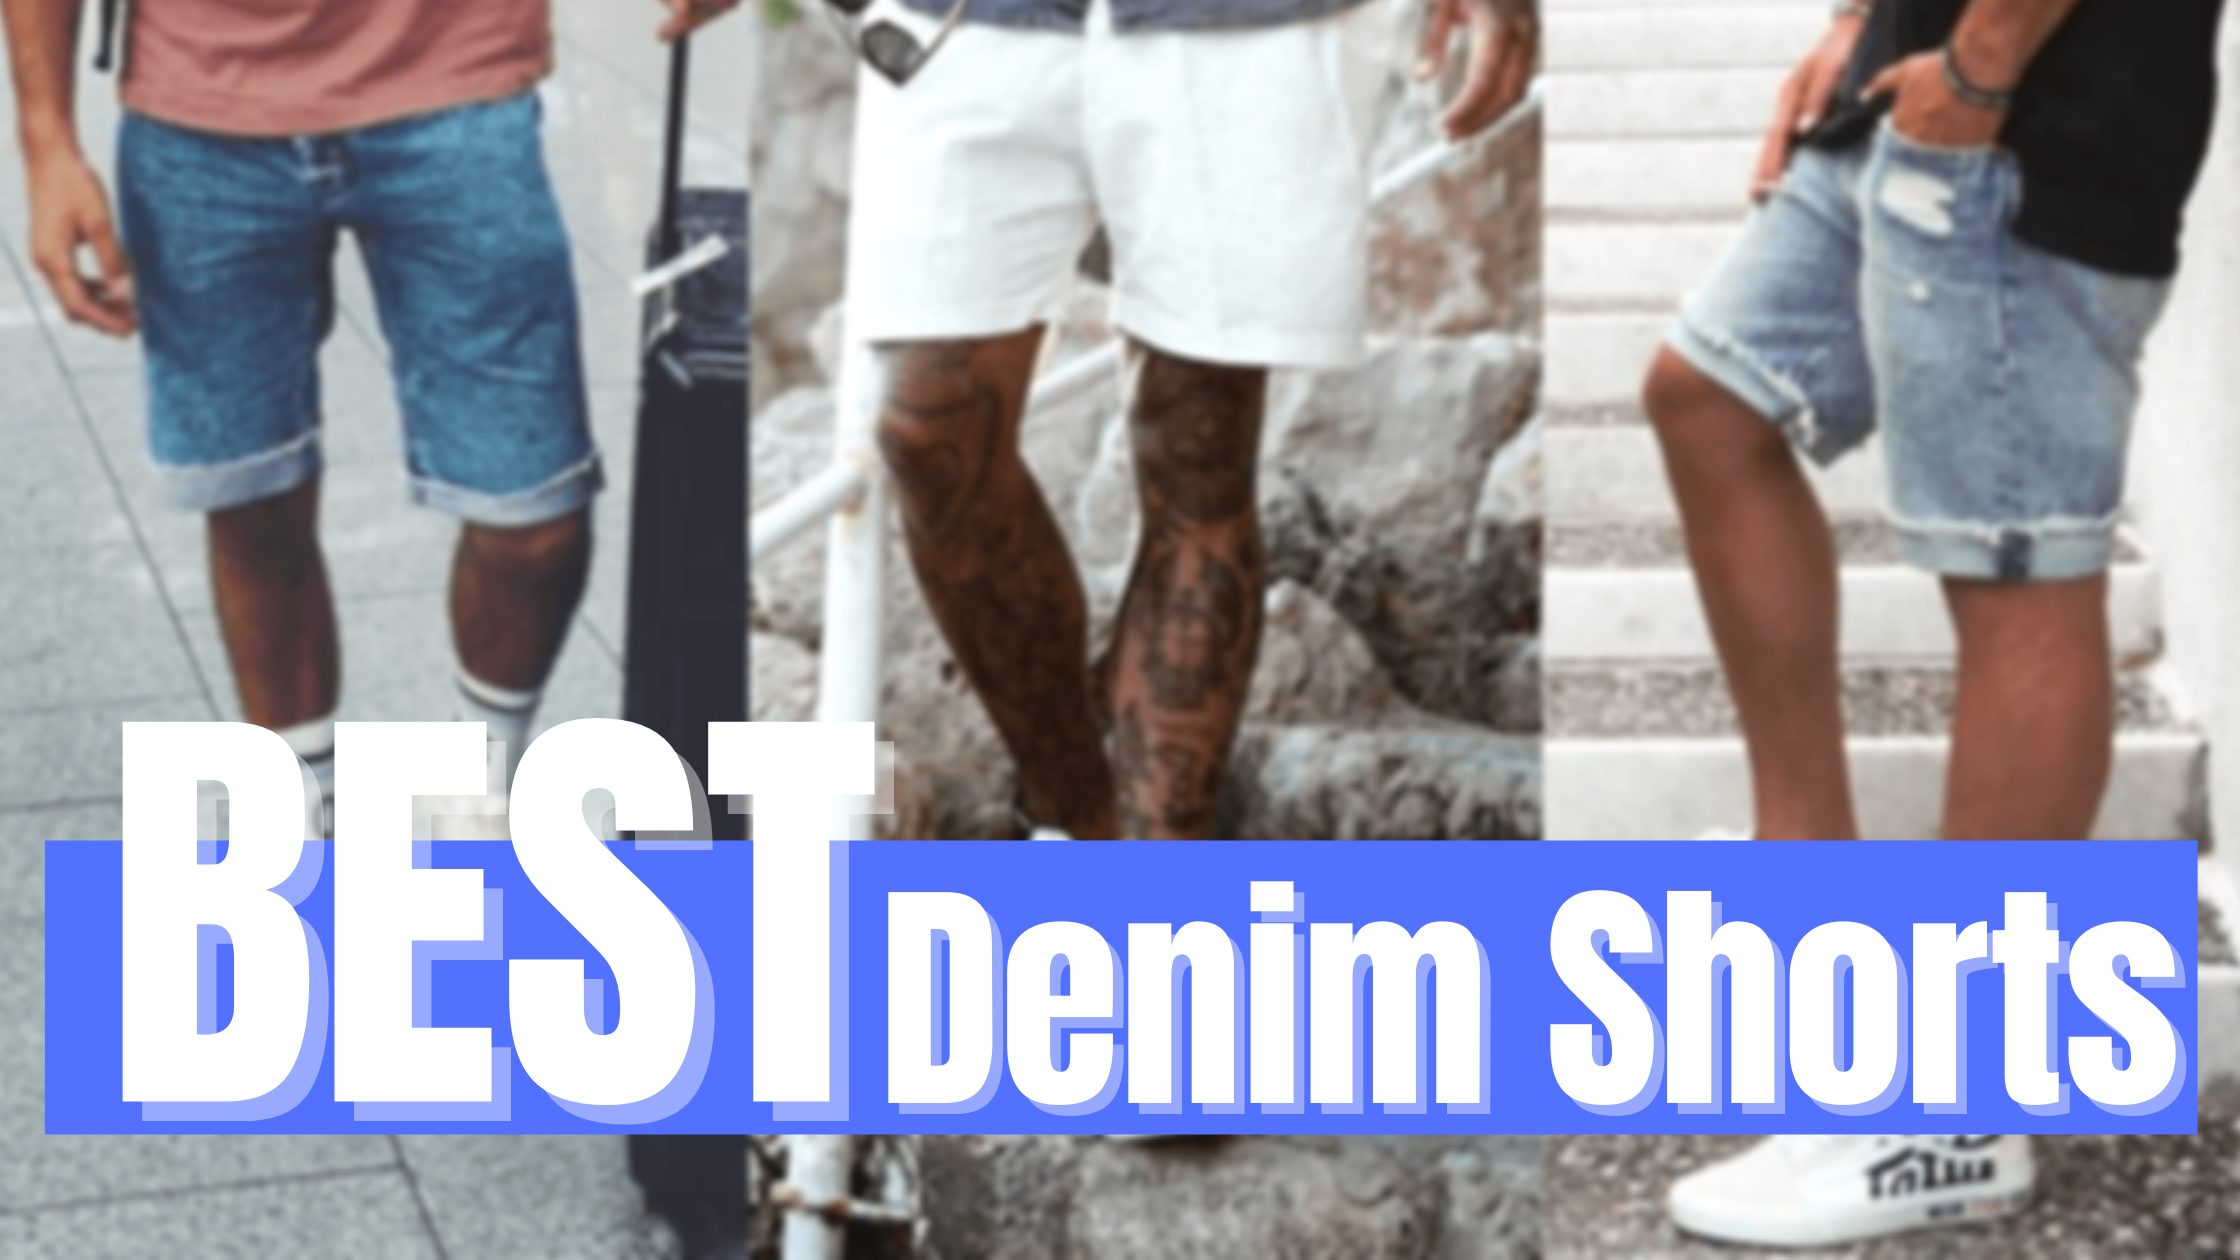 Best Denim Shorts